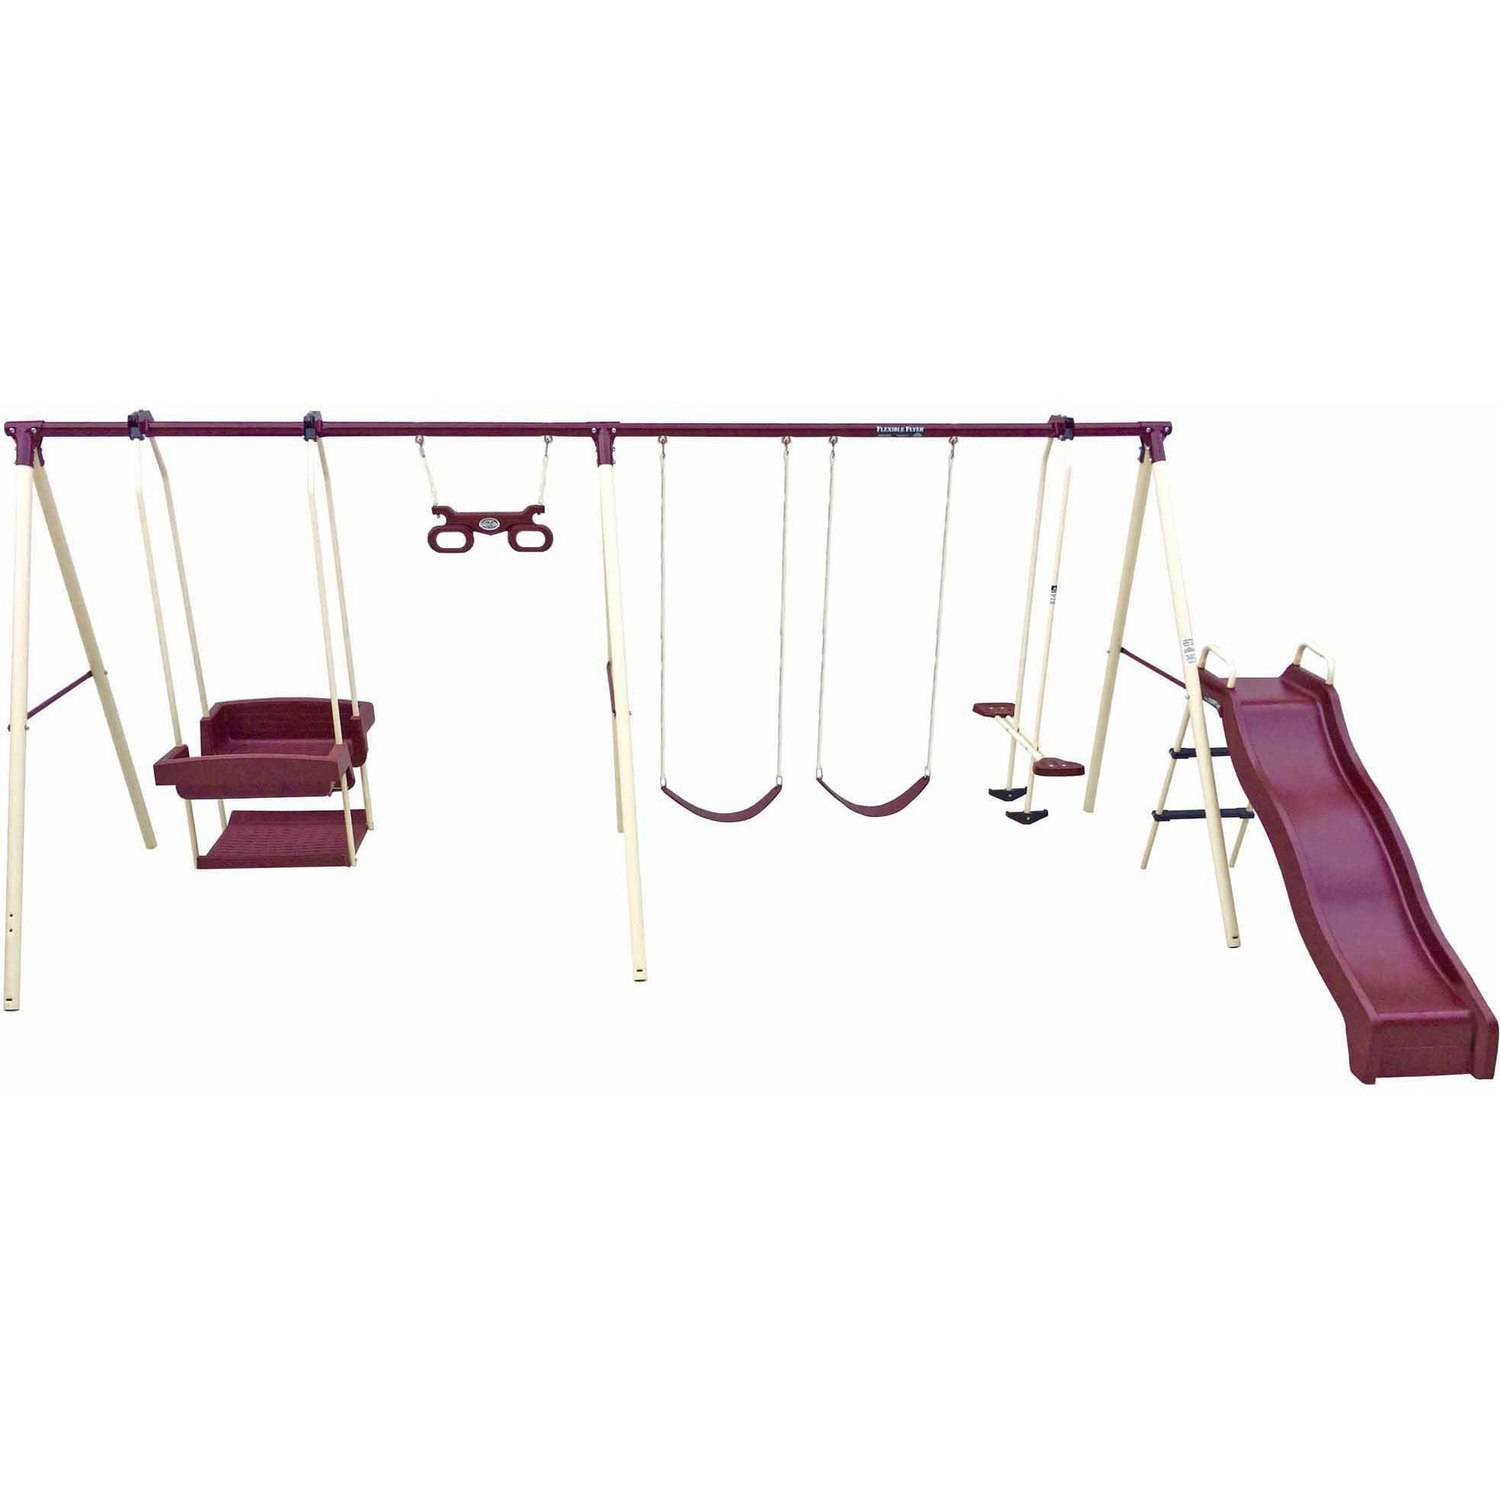 swing for photo swings england play toy park set uk the s children child stock seats gb on childs childrens kids